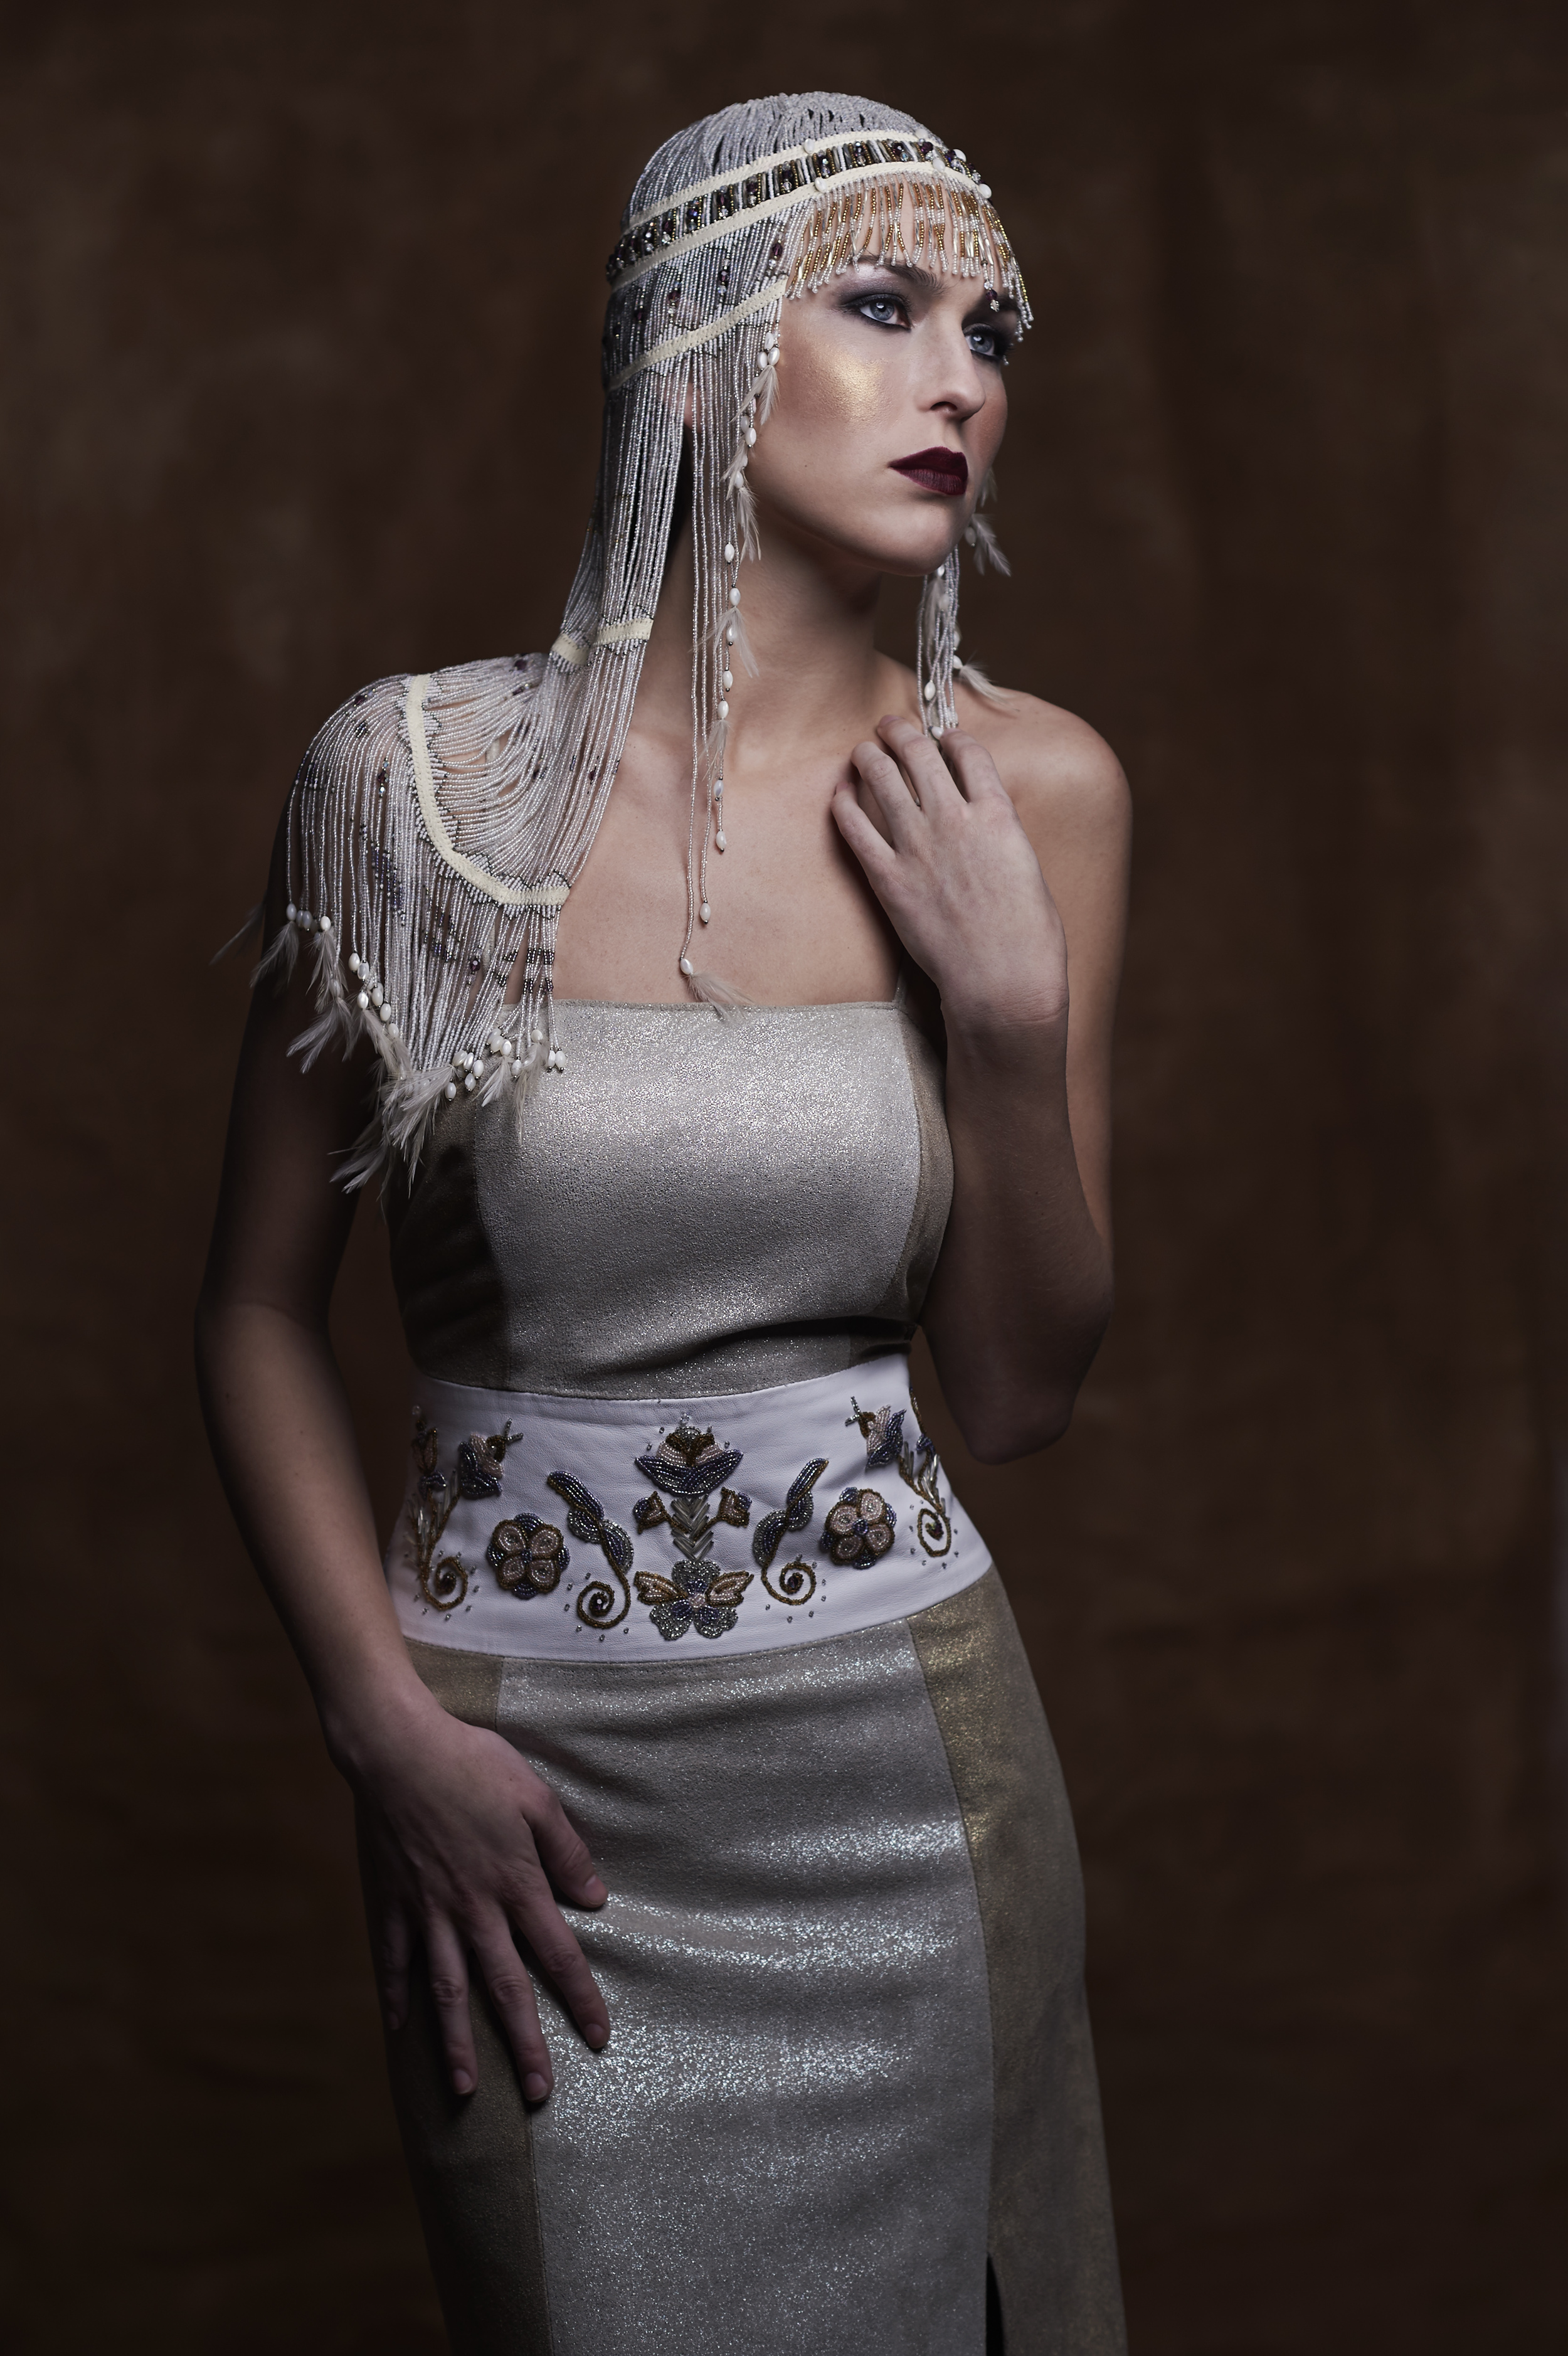 HAND BEADED HEADPIECE - DeMontigny Couture with Silver/Gold Italian suede wedding dress with hand beaded, Woodland floral design by DeMontigny Couture. Price available upon request.    PHOTO BY MARTA HEWSON FOR URBANICITY MAGAZINE - APRIL 2016 ISSUE